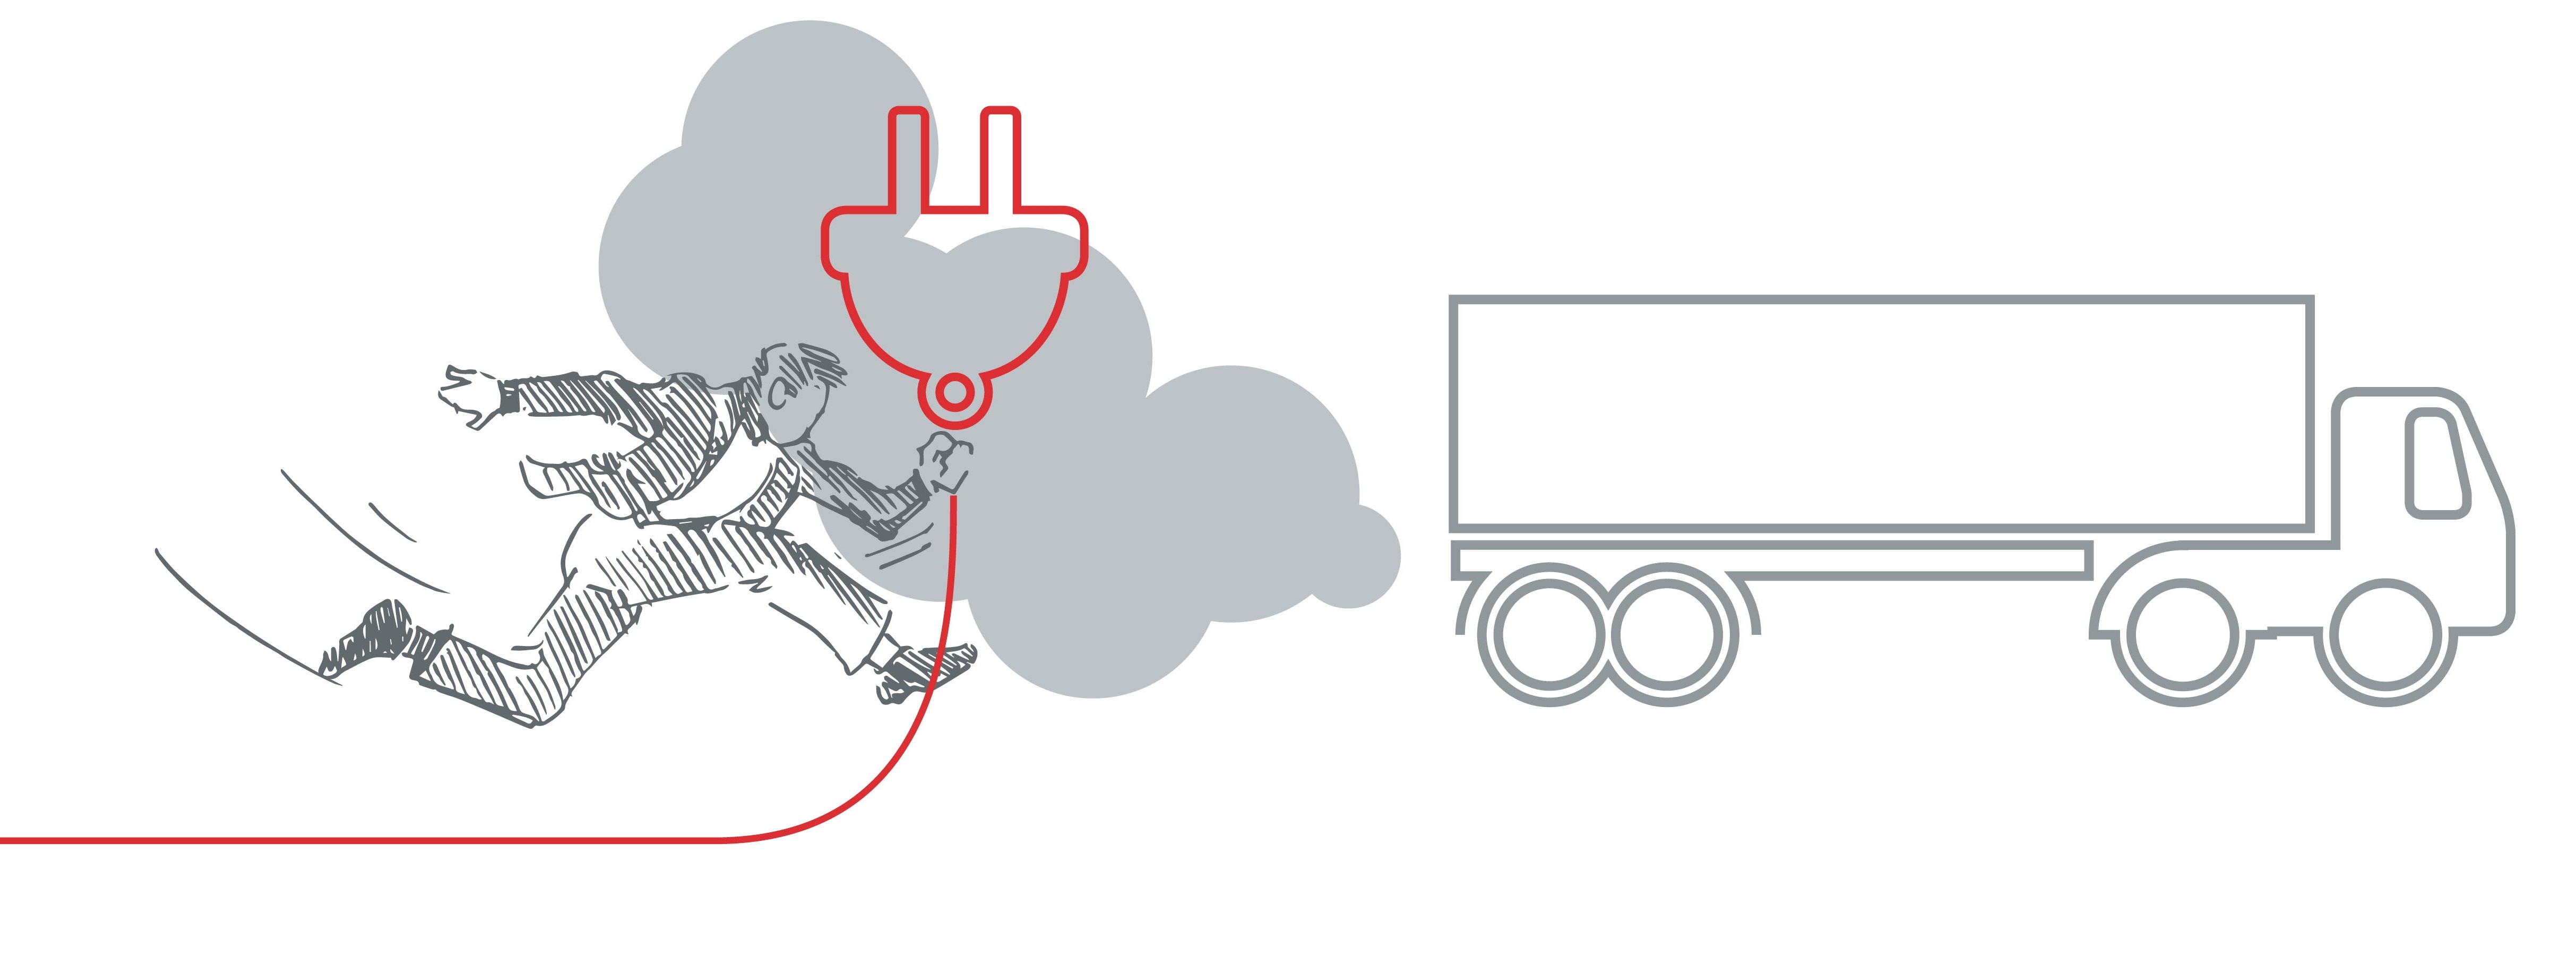 Sketch of a person holding an electric plug while approaching a truck